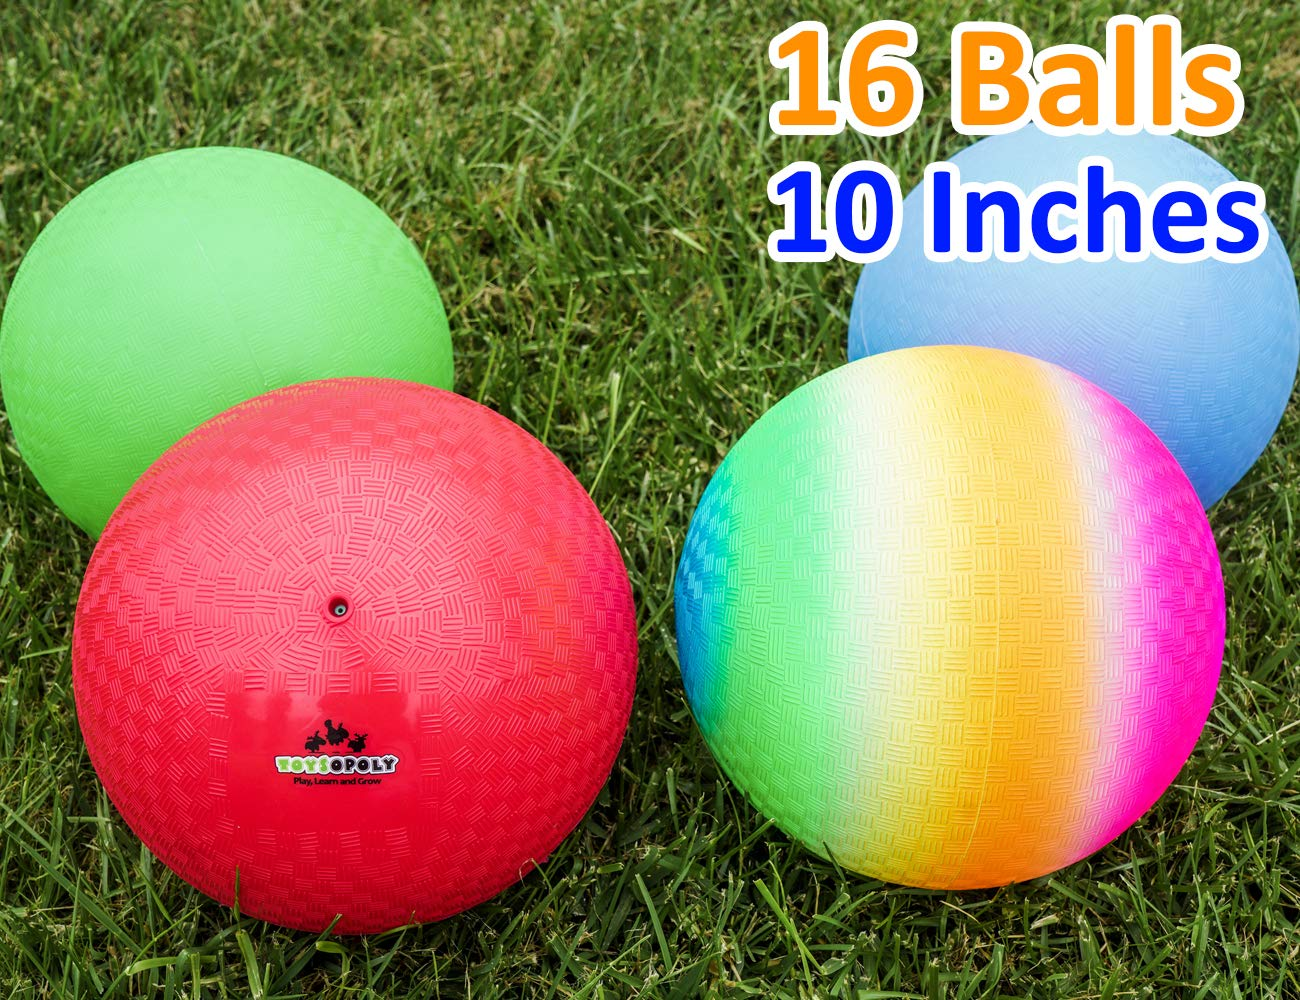 Playground Balls 10 inch Dodgeball (Set of 16) Kickball for Boys Girls Kids Adults - Official Size Bouncy Dodge Ball, Handball, Four Square Picnic School + Free Pump